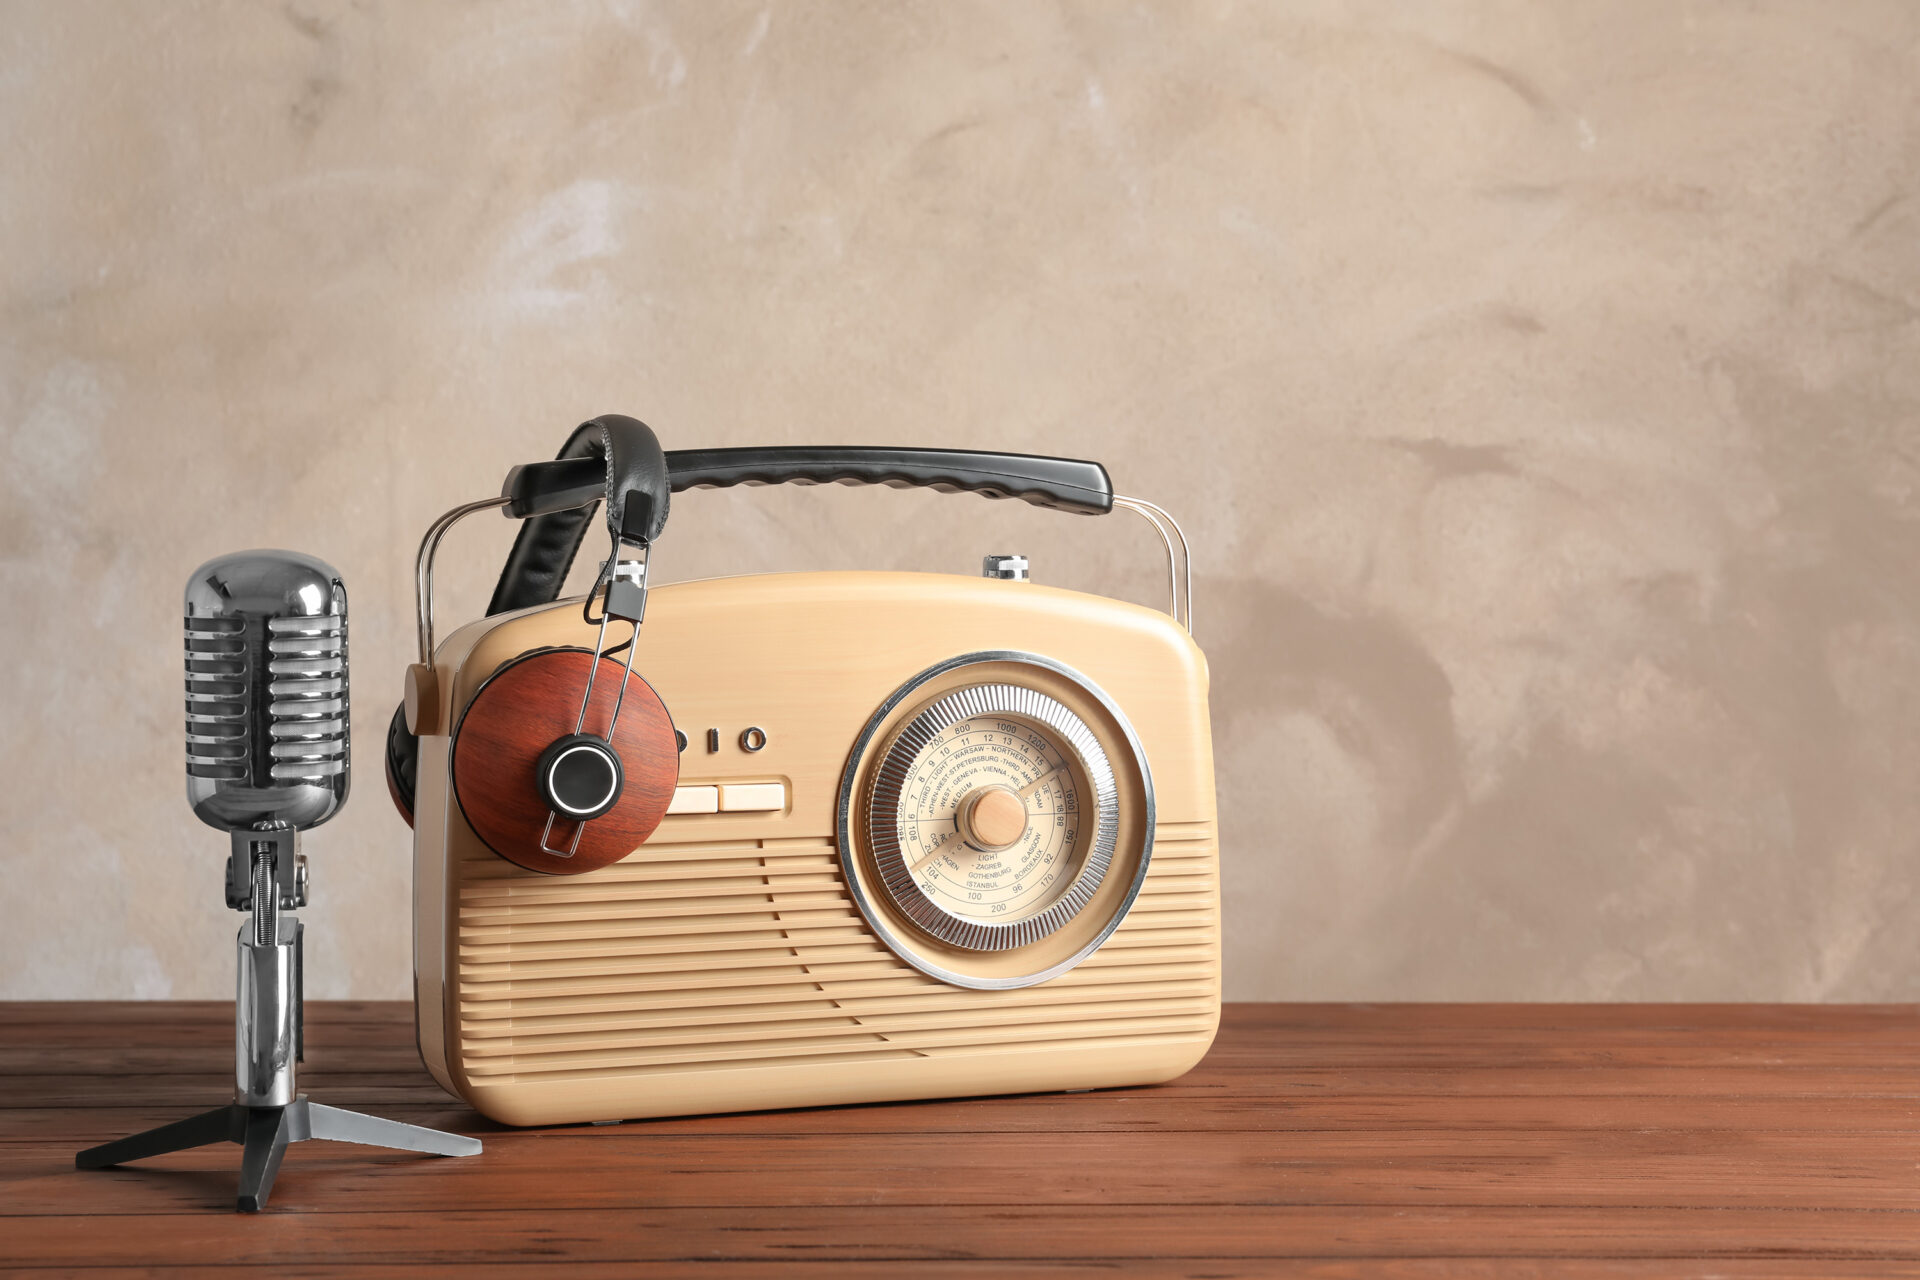 Retro radio, microphone and headphones on table against light wall